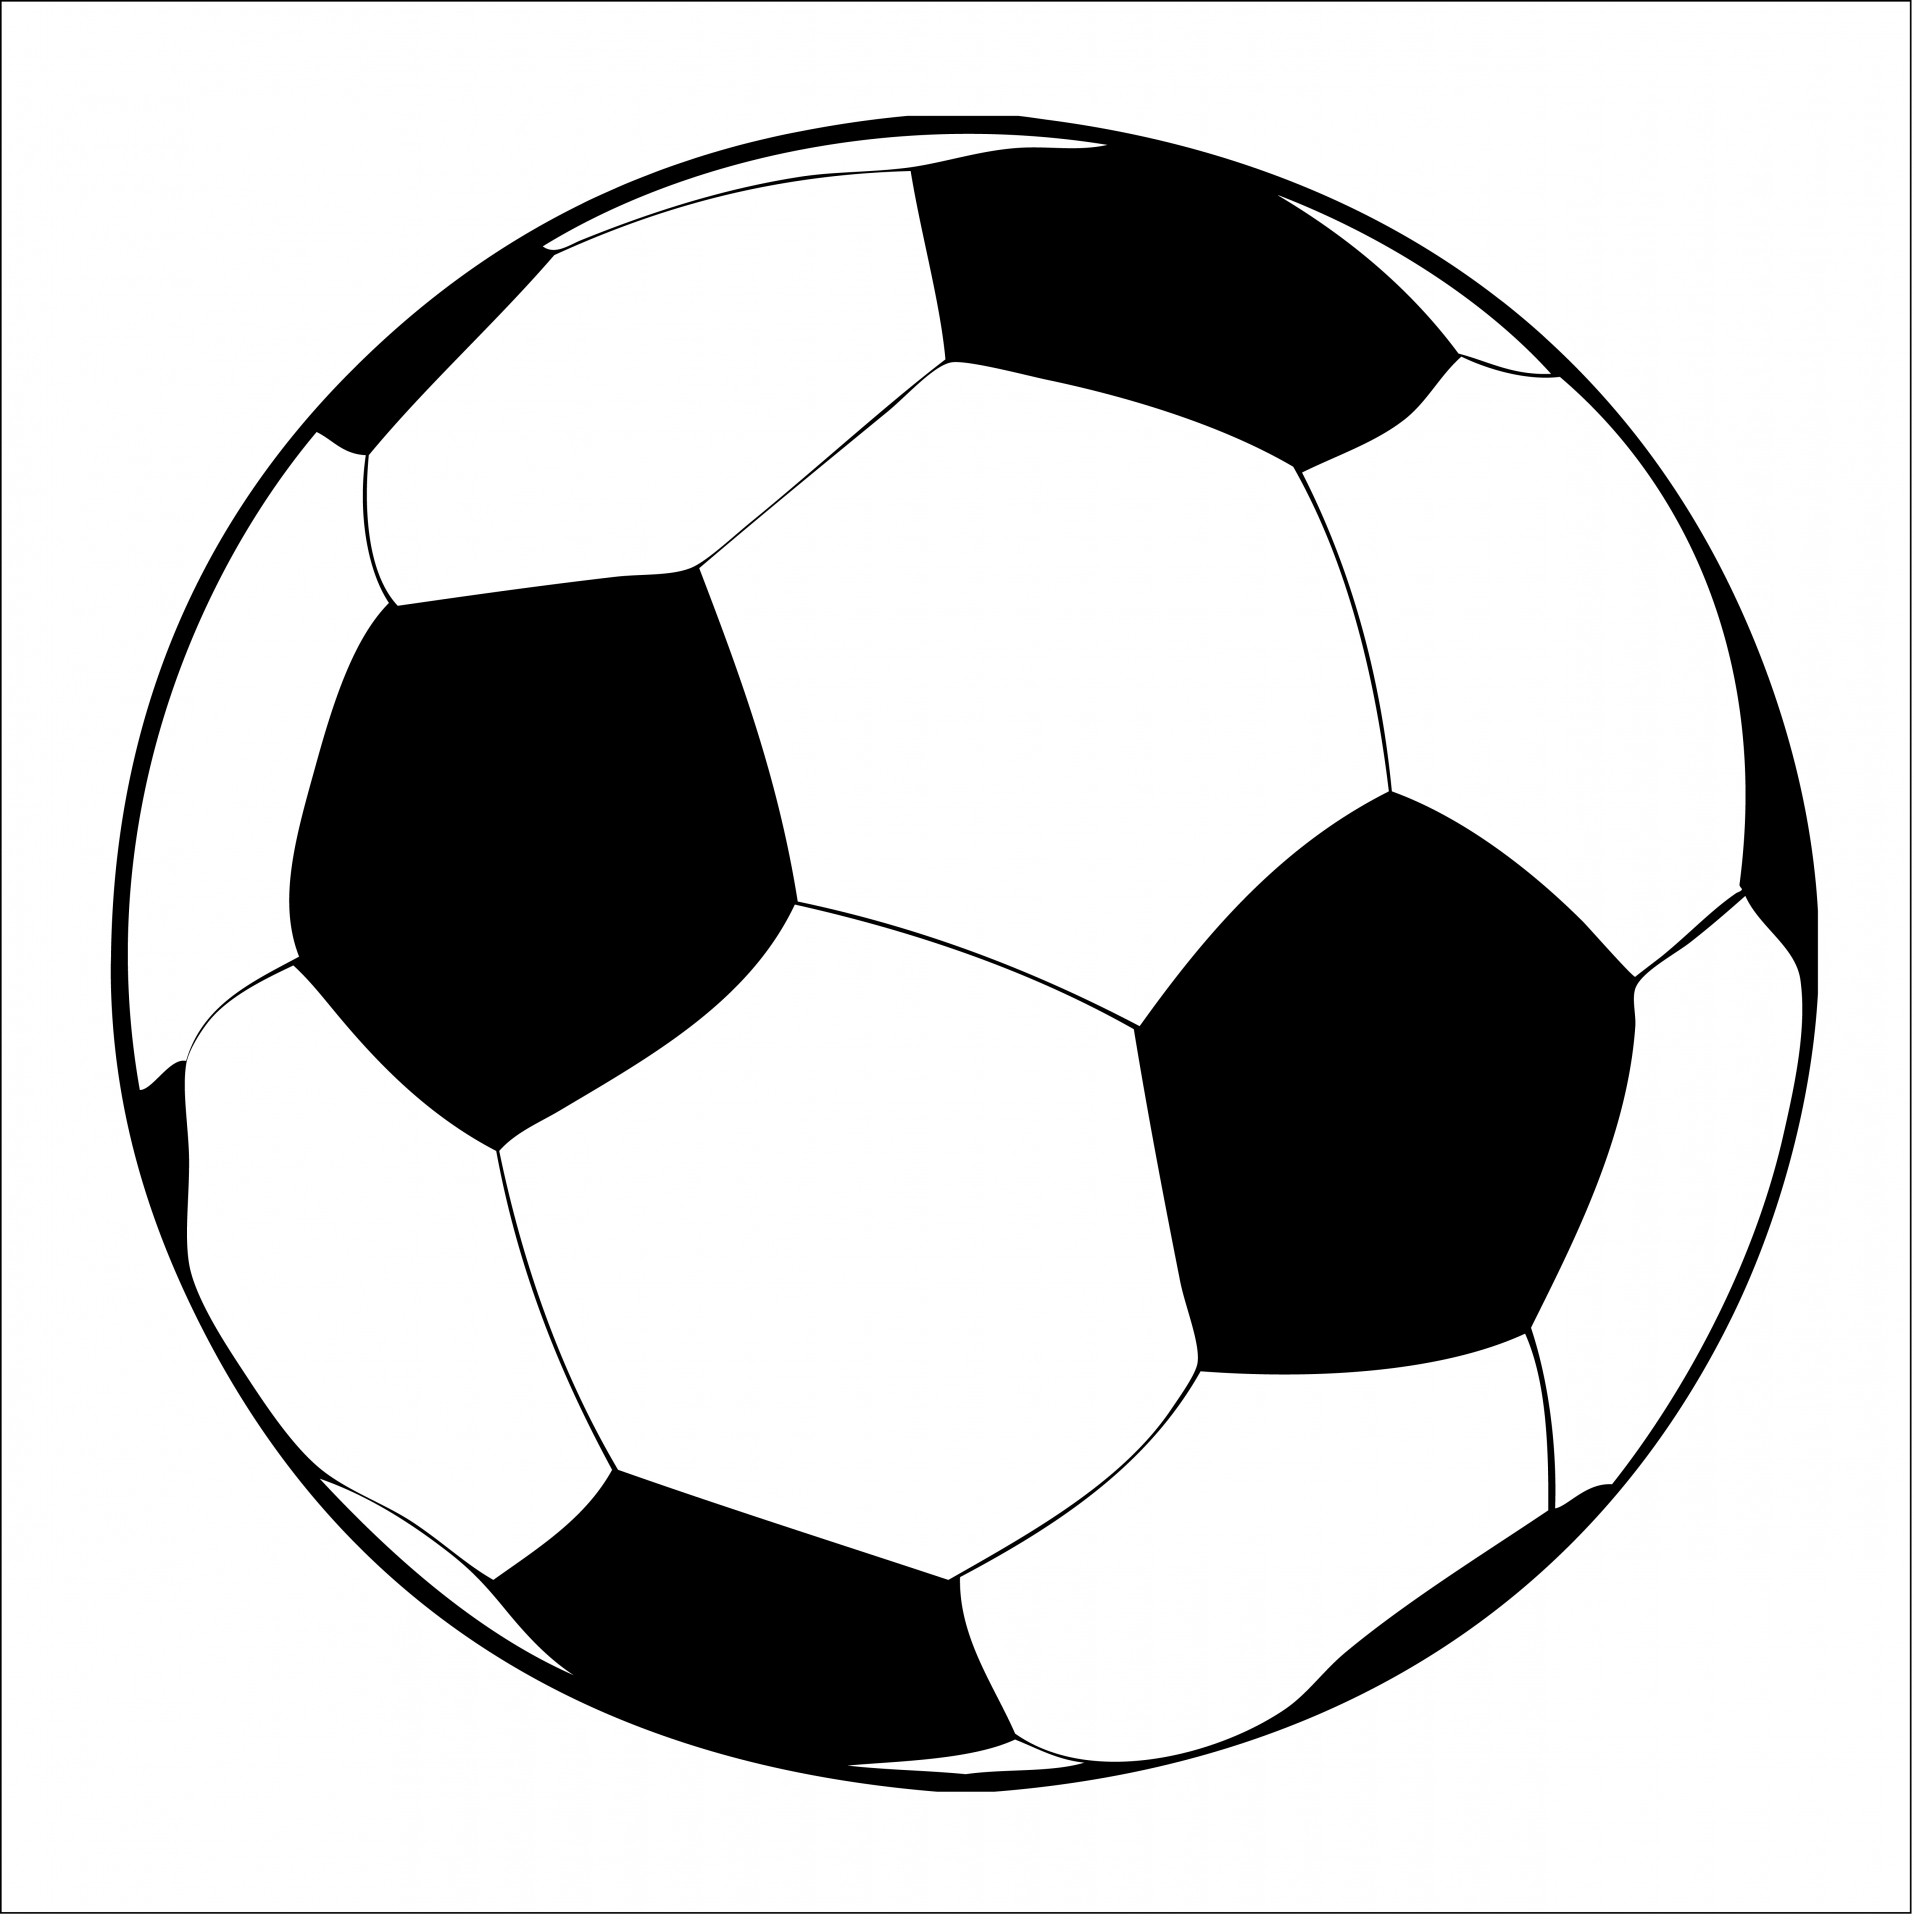 Free Ball Clipart Black And White Download Free Clip Art